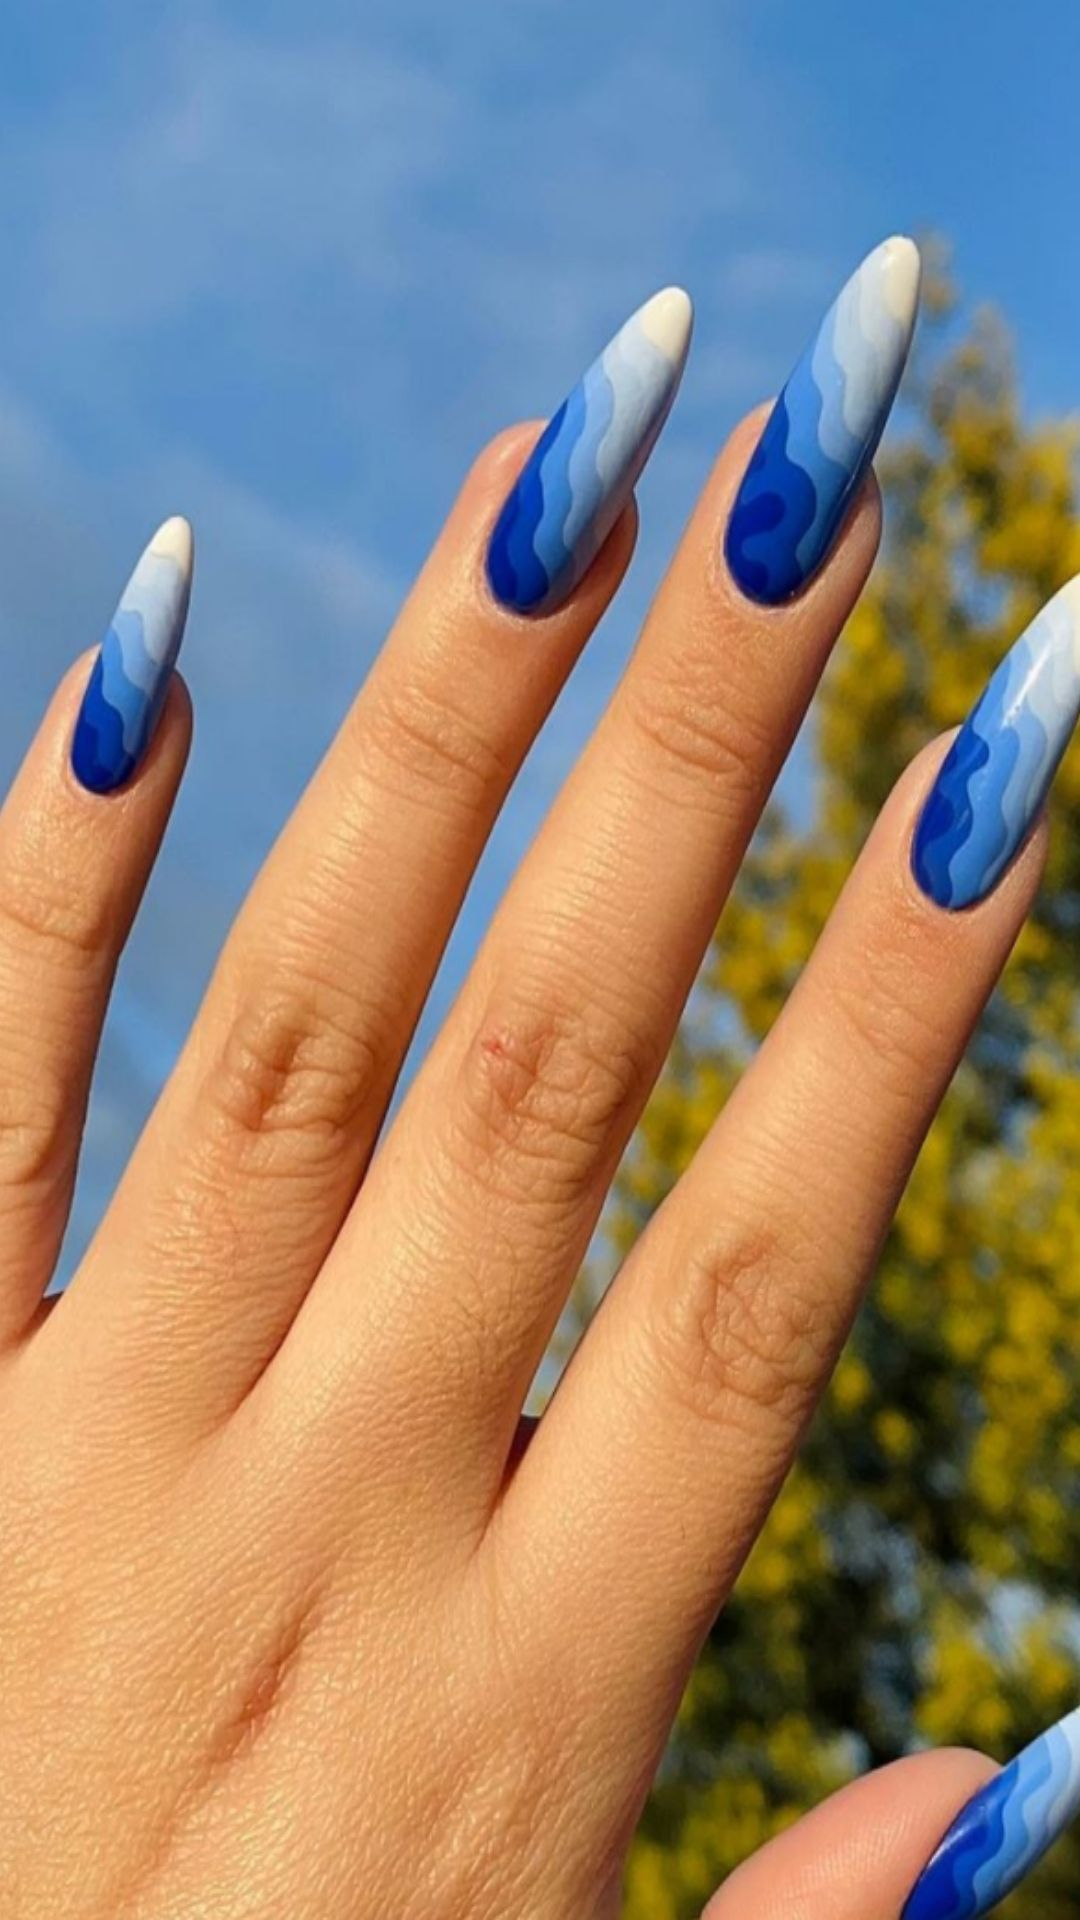 30 Stunning Blue nails aesthetic for a Bold and Beautiful Look